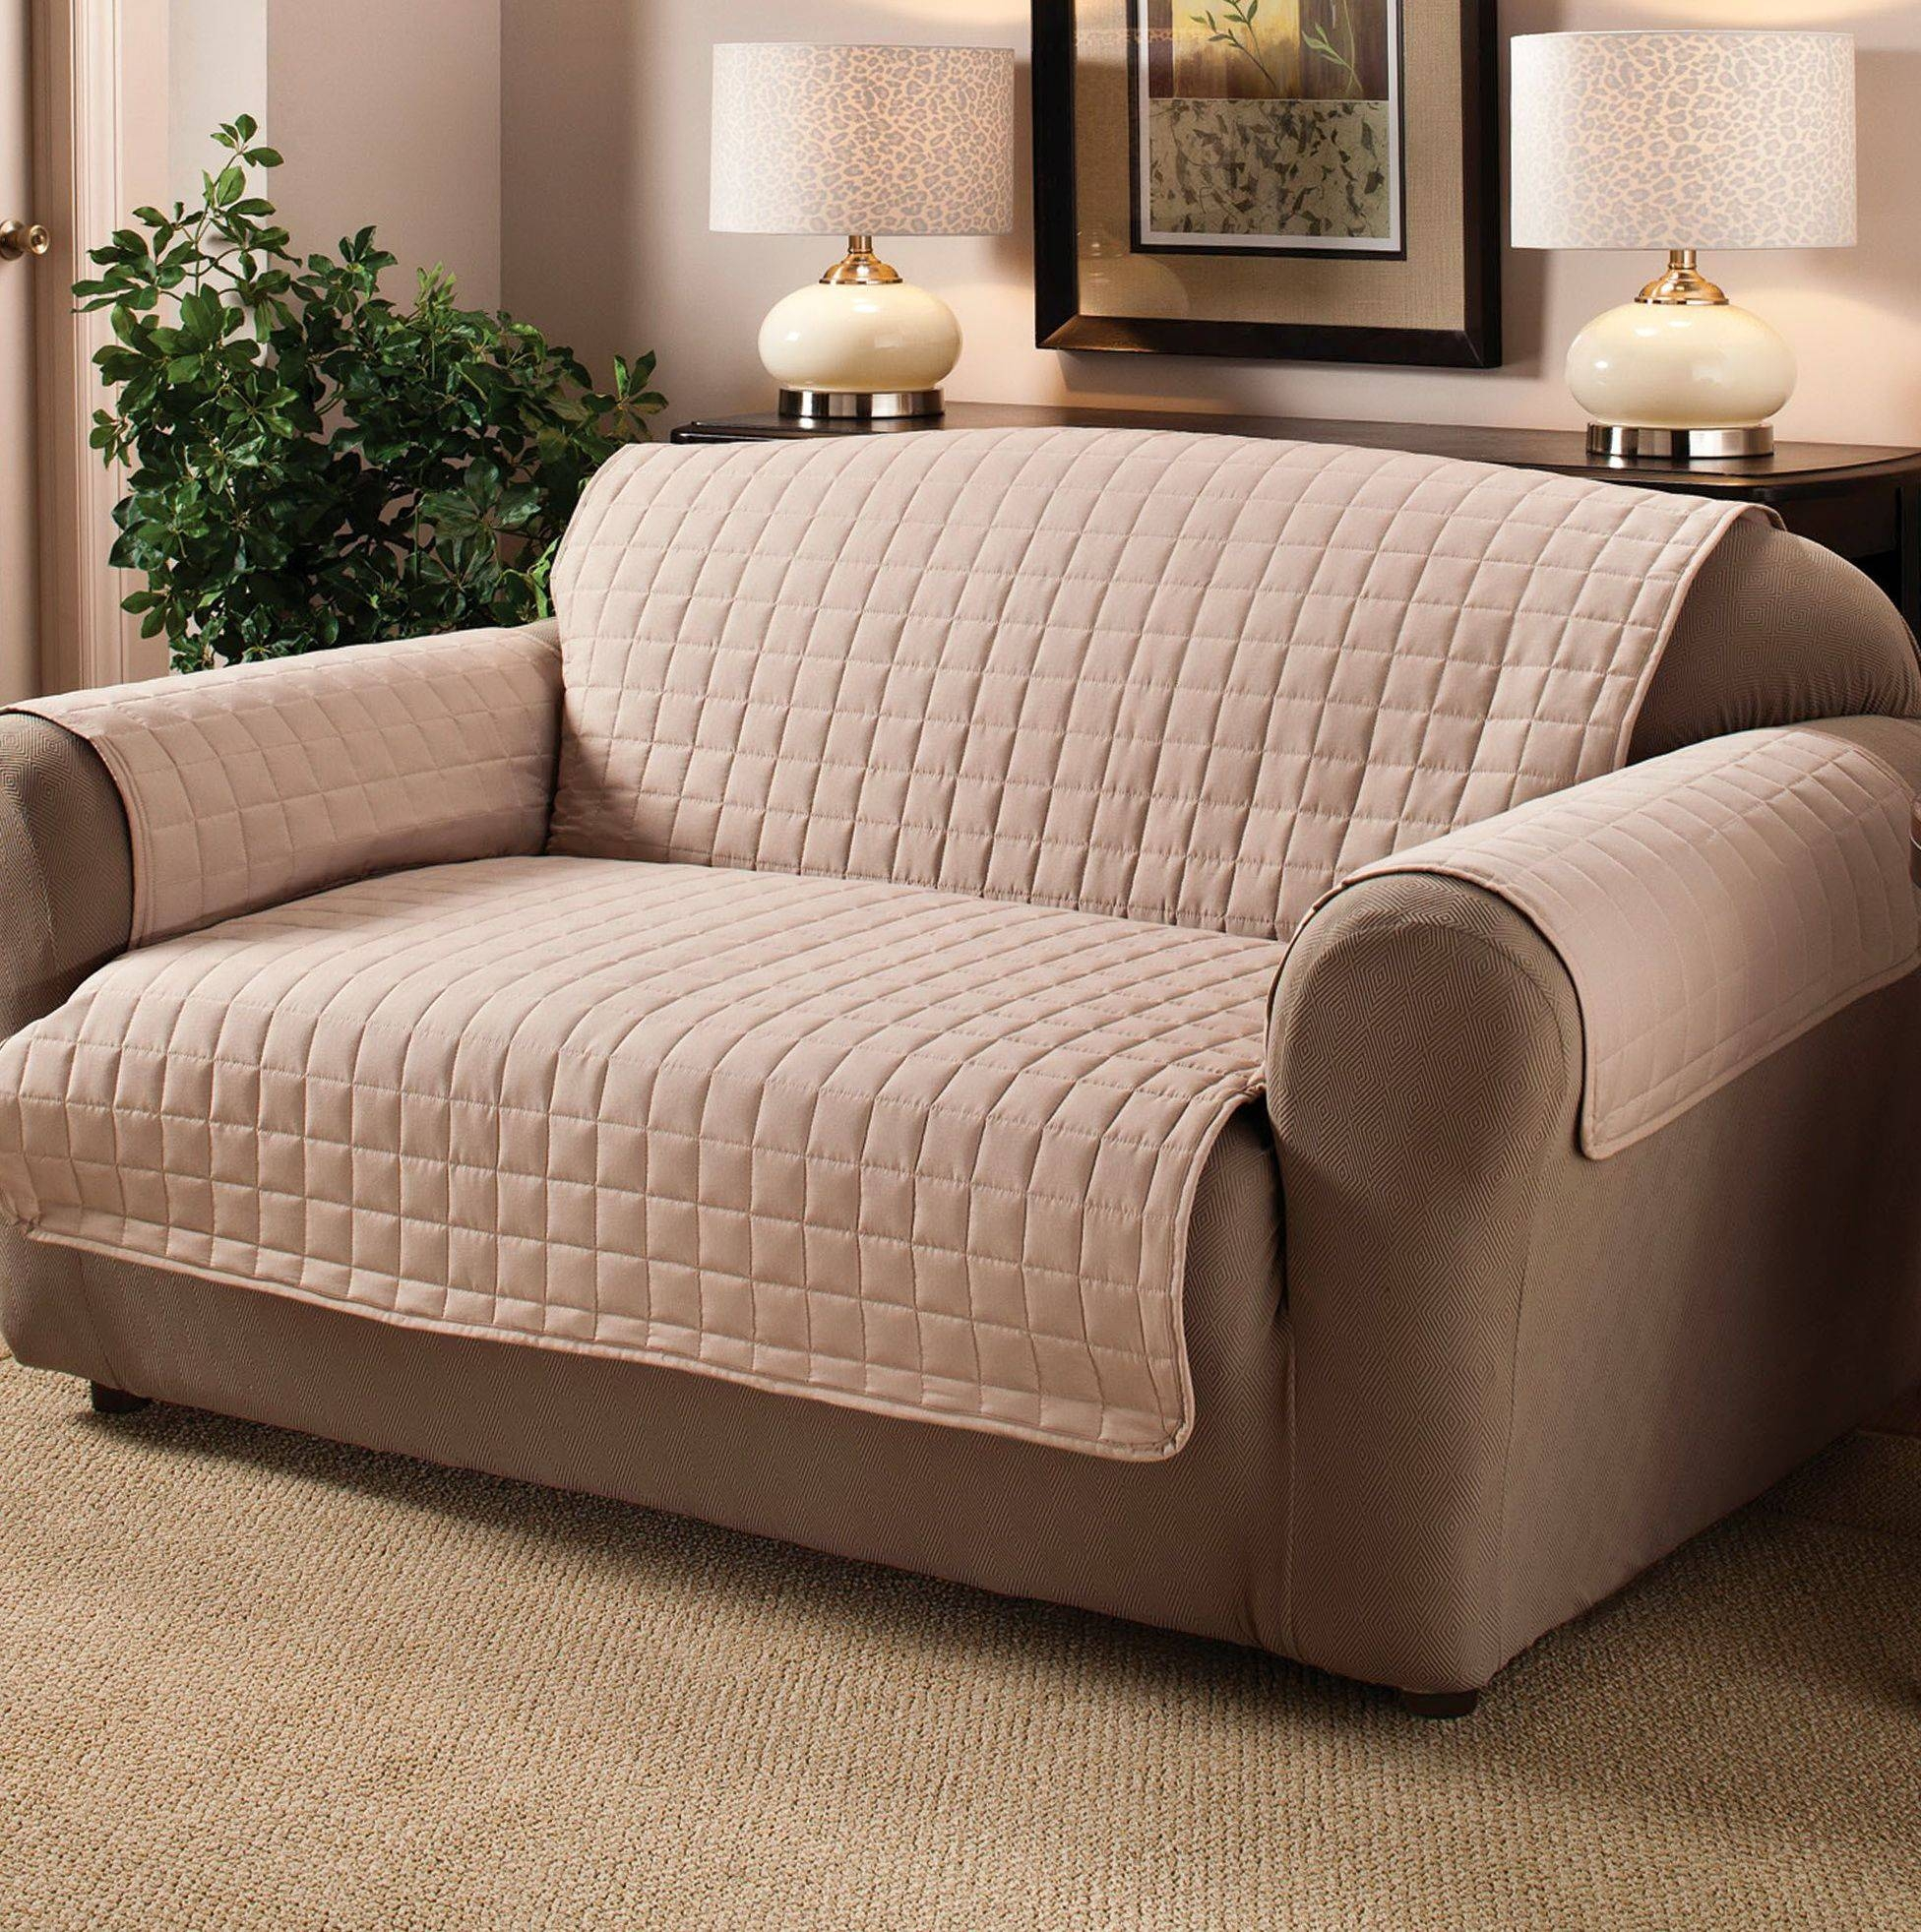 Furniture: Oversized Chair Slipcovers To Keep Your Furniture Clean regarding Contemporary Sofa Slipcovers (Image 15 of 30)